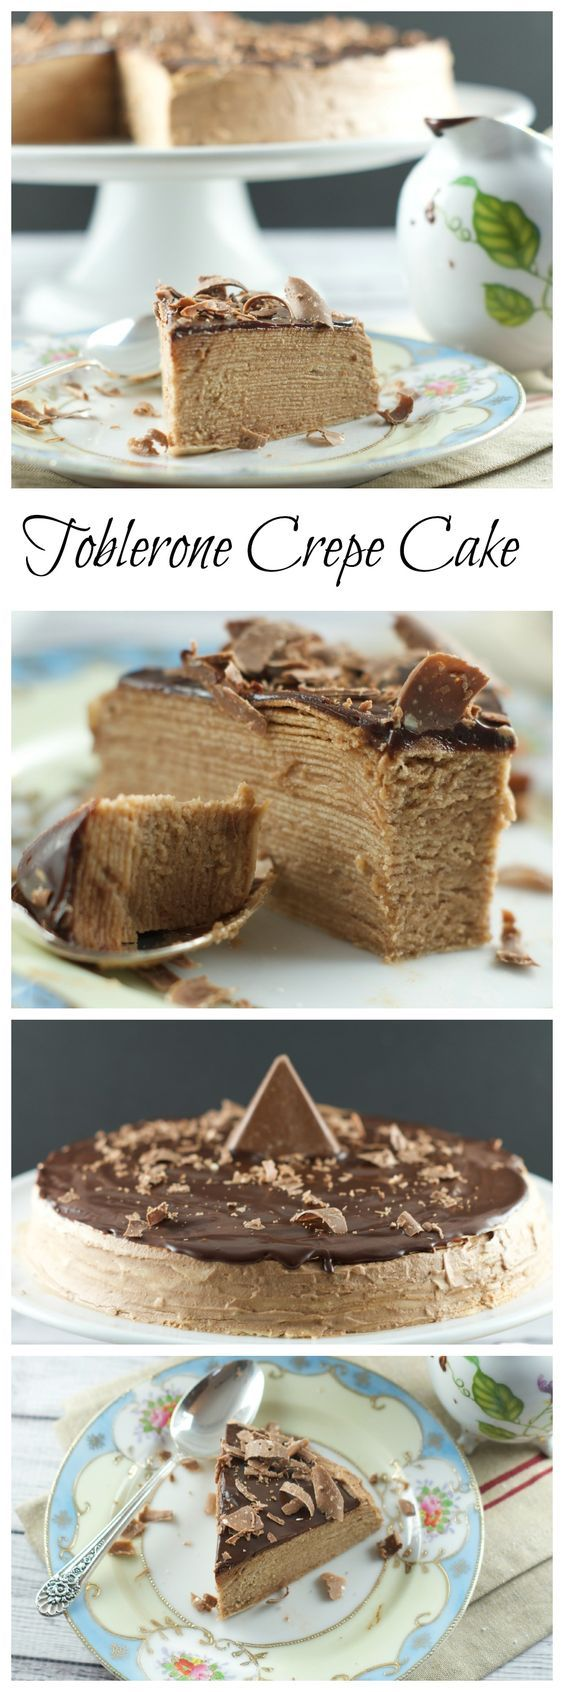 Toblerone Chocolate Crepe Cake - 30 crepes layered with Toblerone ganache and topped with a dark chocolate glaze. A simple, delicious and beautiful cake for entertaining. More delicious cake recipes at livingsweetmoments.com  via @Livingsmoments